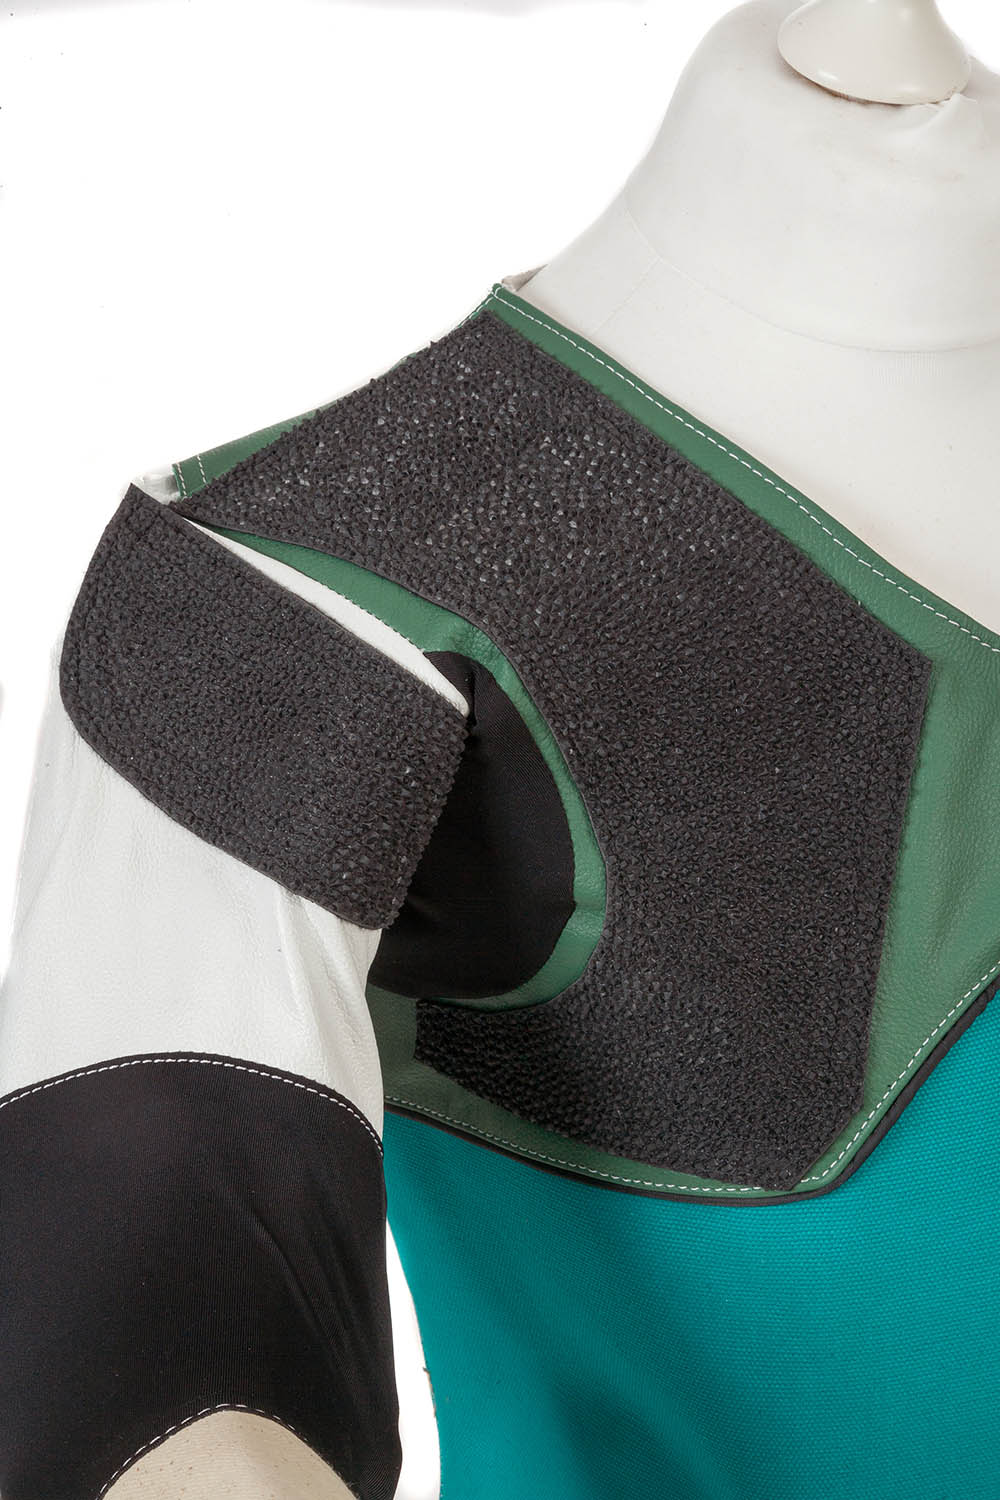 Non-slip rubber shoulder pad - Centaur Match 19 Double Canvas and Leather Target Shooting Jacket